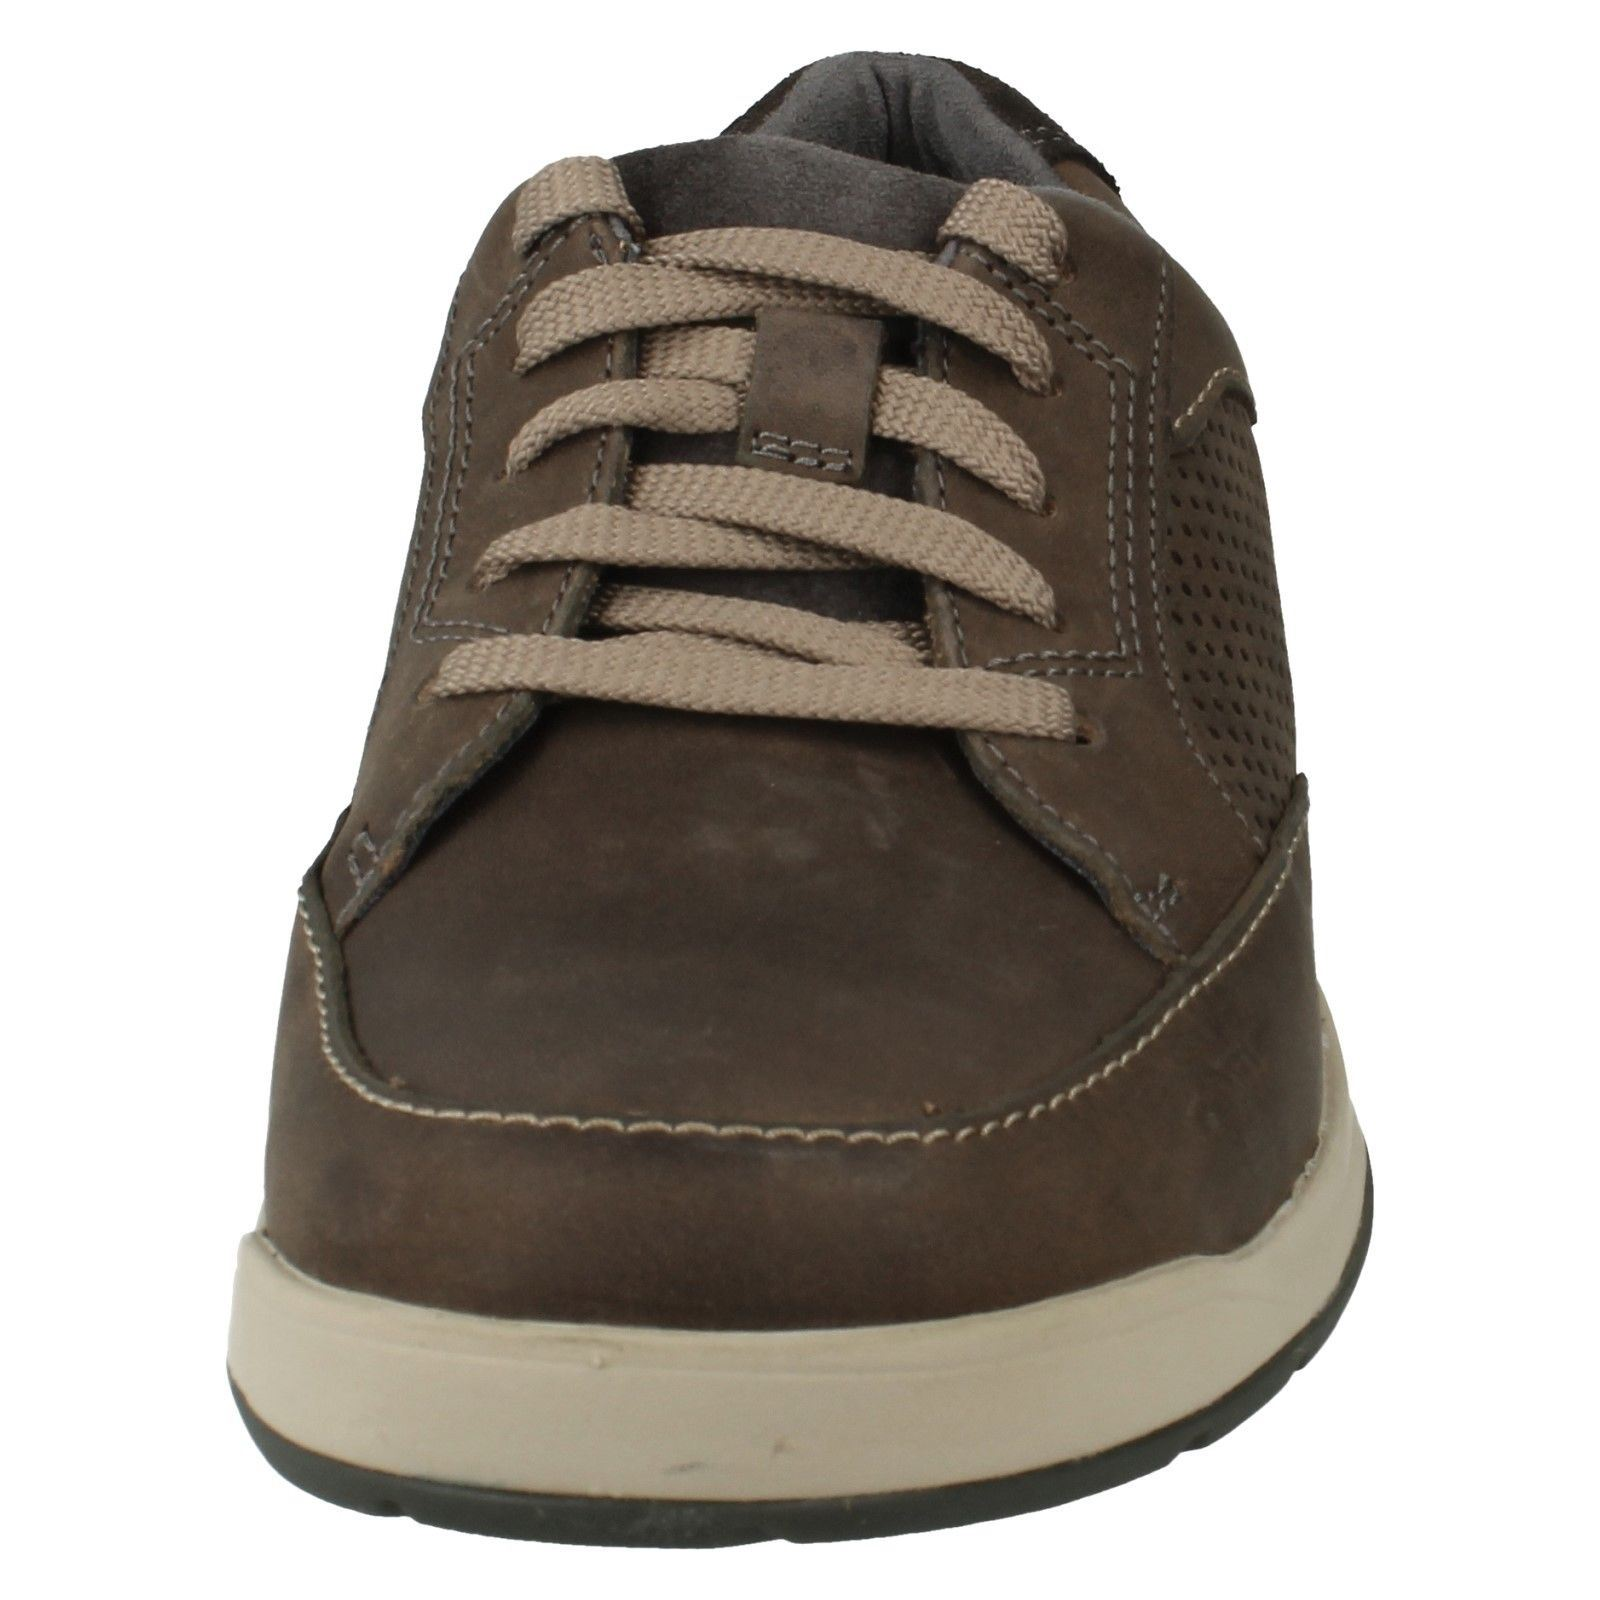 Men's - Claks Casual Shoes Label - Men's  Stafford Park5 daaf0f